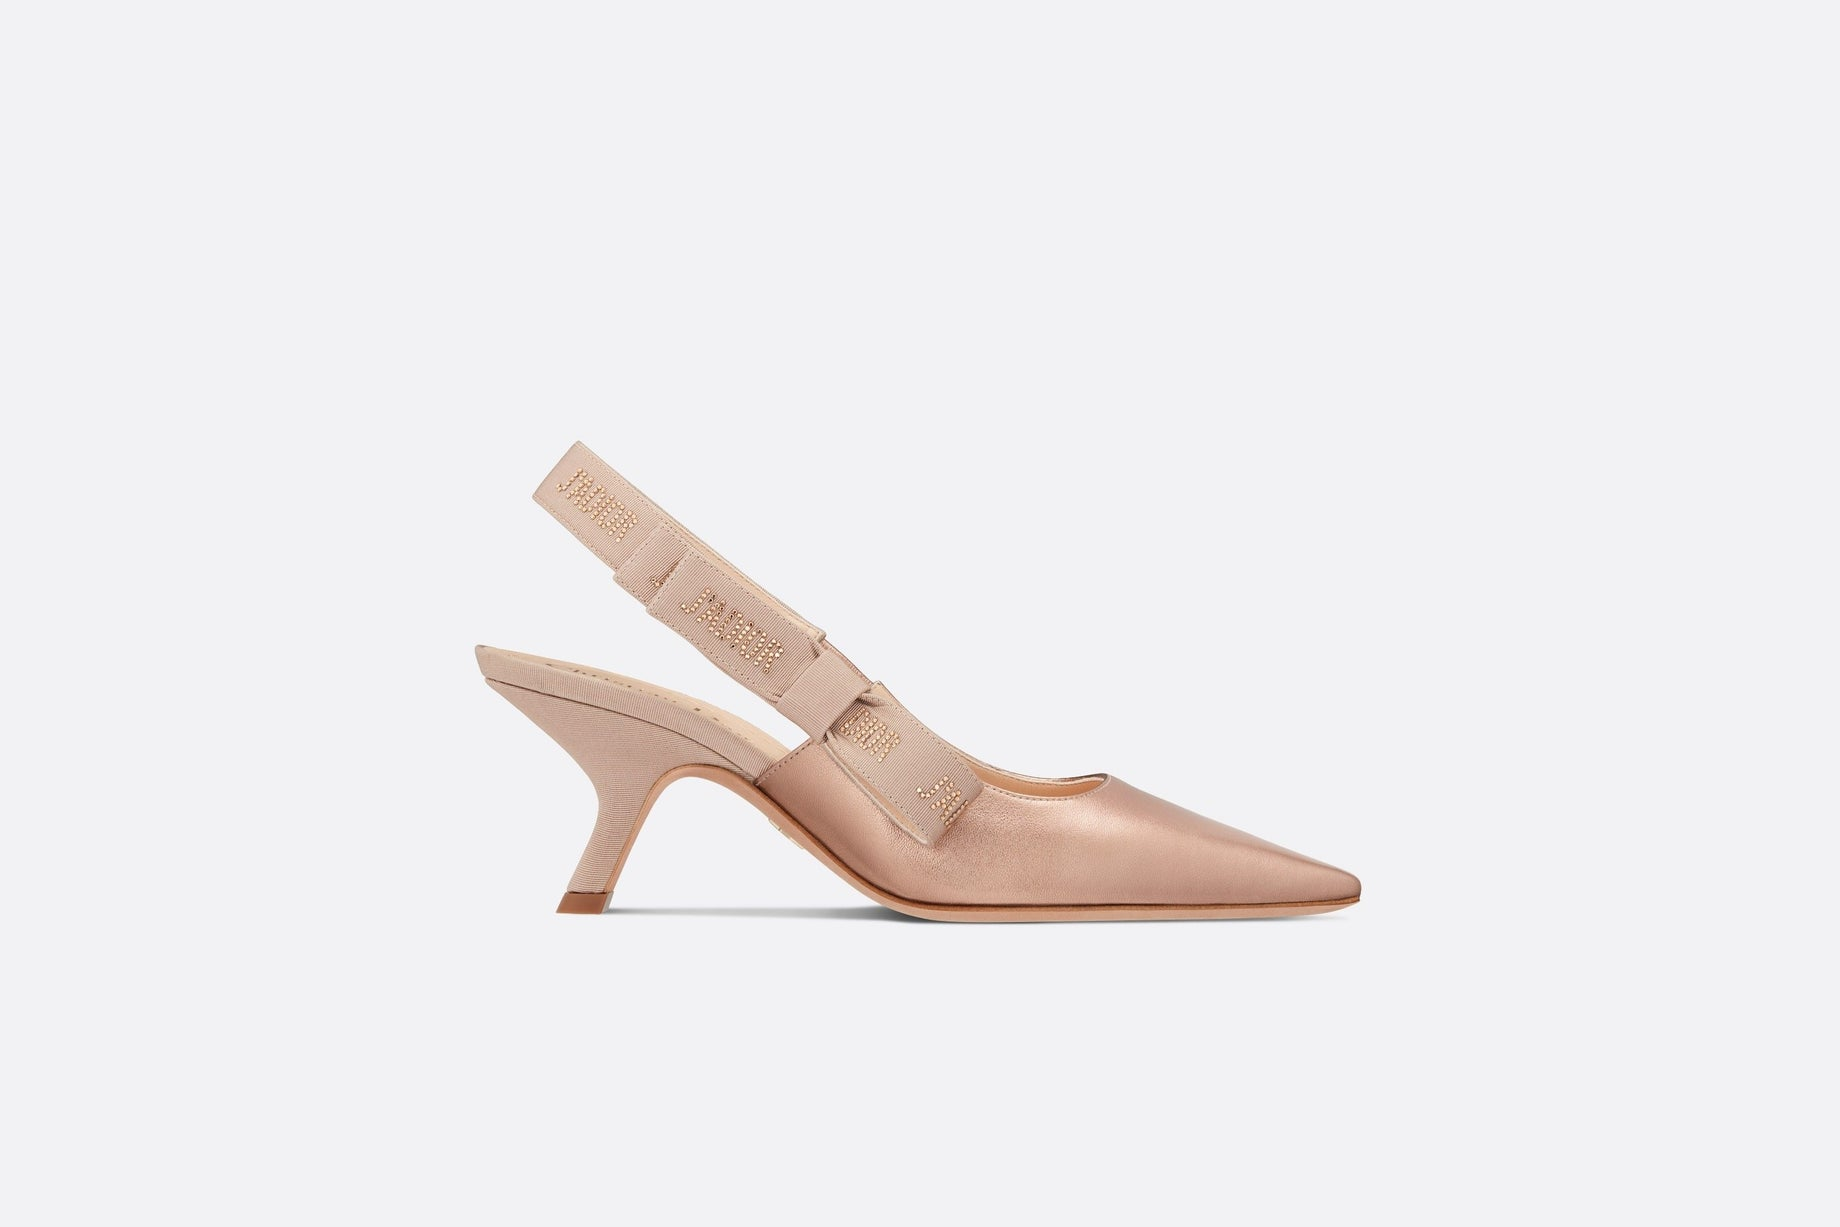 J'Adior Slingback Pump • Metallic Rose Gold Lambskin